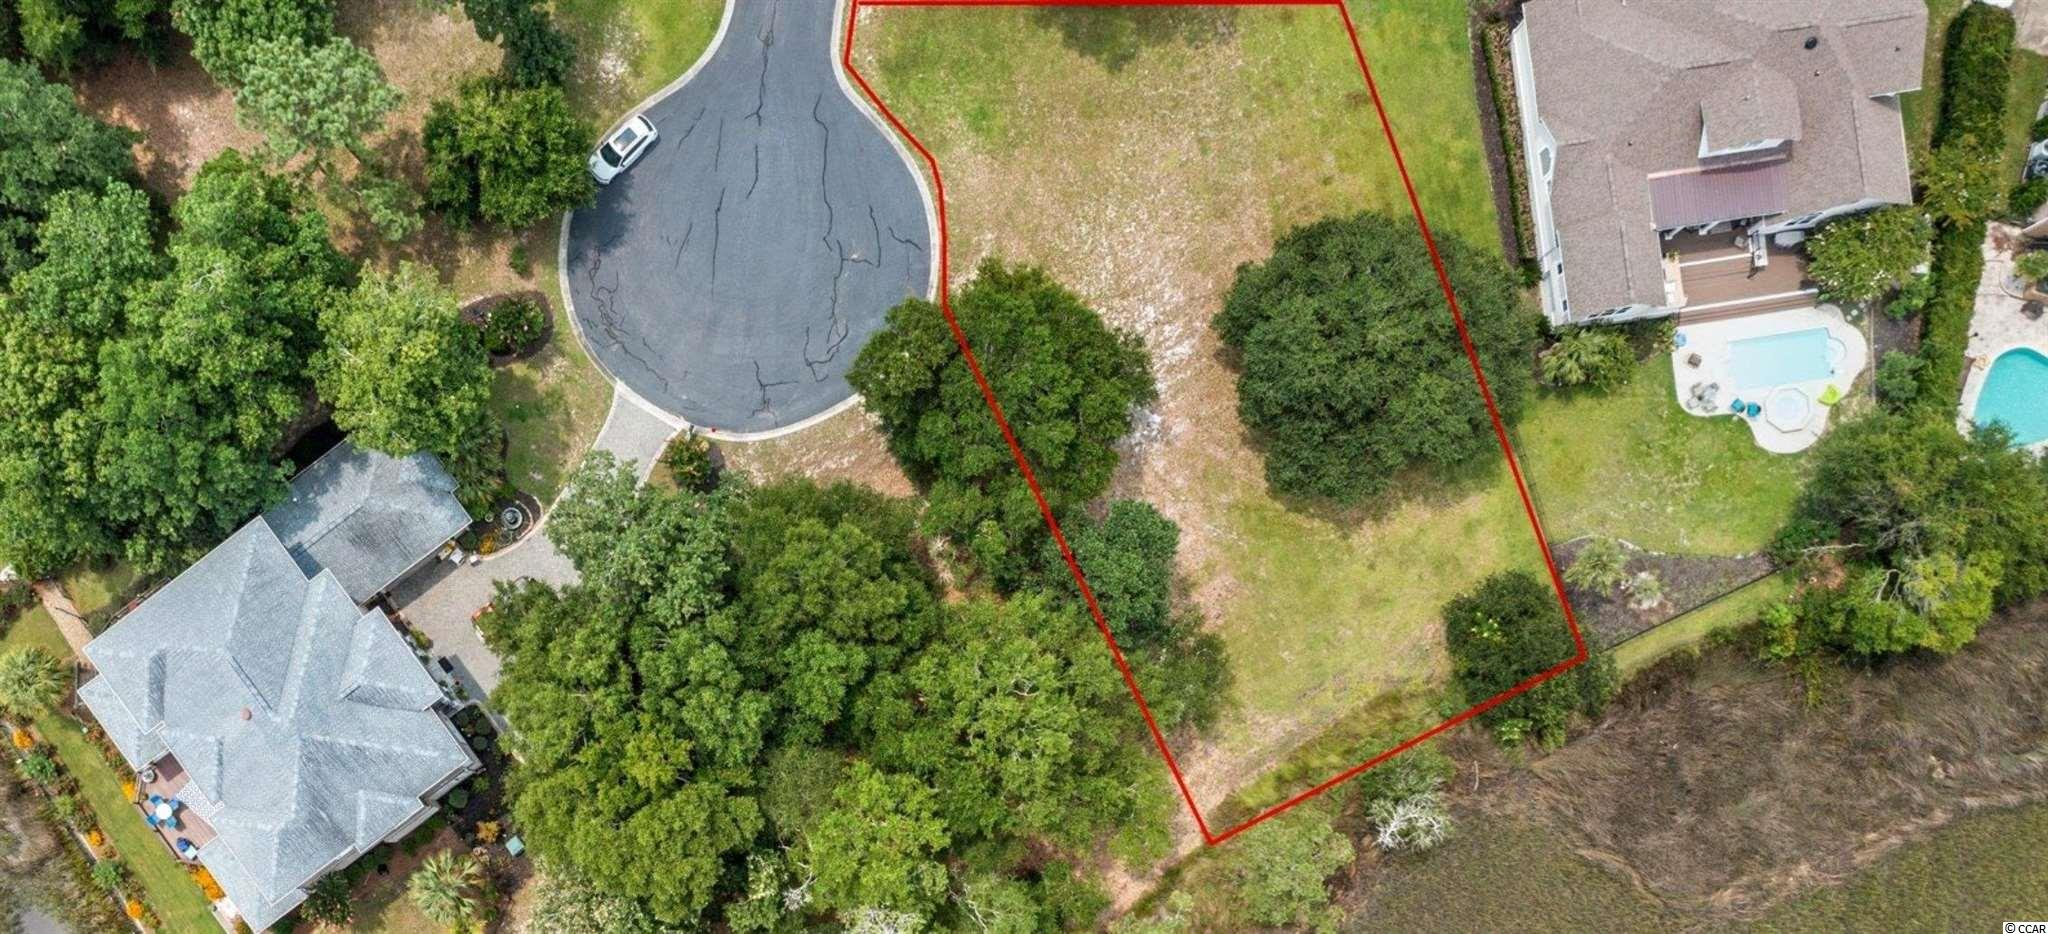 Outstanding views of the Mullet Creek and neighborhood access to Intercoastal Waterway!!!If you are looking for privacy and exclusivity, this is the Lot for you. This gorgeous lot is on cul-de-suc with stunning marsh views in the Intercoastal Waterway Neighborhood.Your feature homesite is a large lot that allows to build various home plans . Big Landing Plantation is tucked away from the hustle and bustle but still just minutes away from beaches of the  North and South Carolina and a direct access to the Intercoastal waterway .The community also has a very nice clubhouse with a pool and picnic area for all to enjoy. Big Landing is a gated community with your security and privacy with a large pier in the Intracoastal Waterway with two boat docks ,low HOA fees, abundant wildlife, quiet beauty, and fantastic marsh views from every direction .There are jaw dropping views all throughout the community. You can build your dream home and be close to many restaurants, golf, shopping, and of course the beach. Big Landing Plantation encourages designs that reflects:  Unique, romantic and quality residential appearances ,the creative use of natural topography   Don't let this desirable beauty slip away. This lot is a must see.